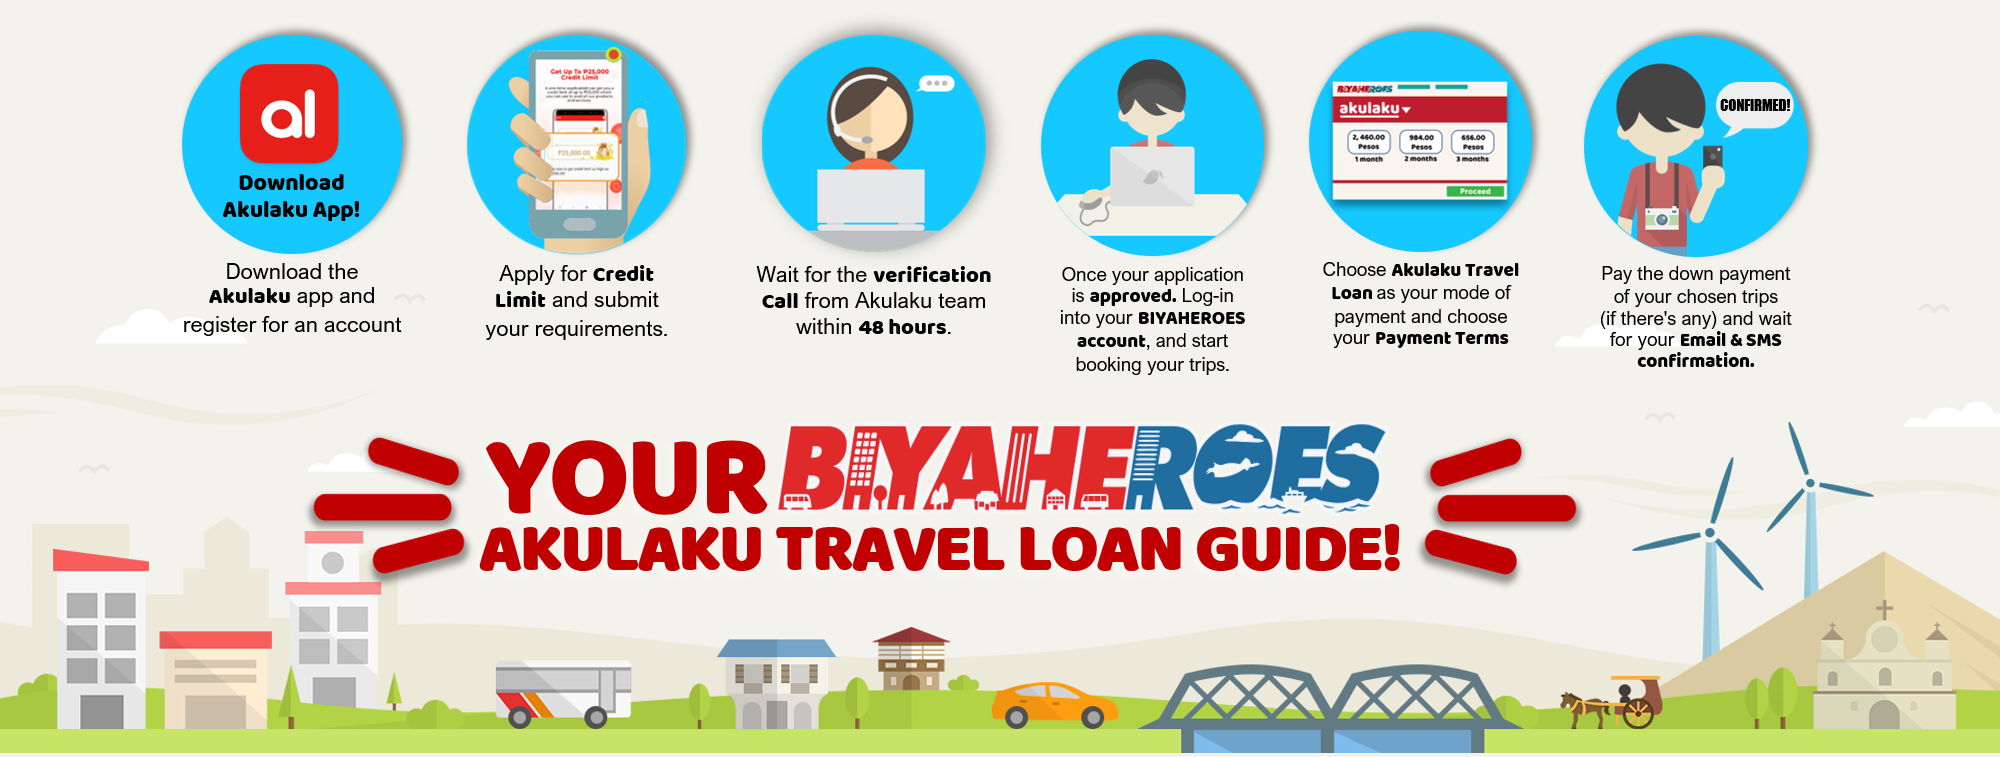 If You Are Looking For The Best Booking Company Try Biyaheroes Com And Use The Installment Basis Payment Travelling Tips Booking How To Apply